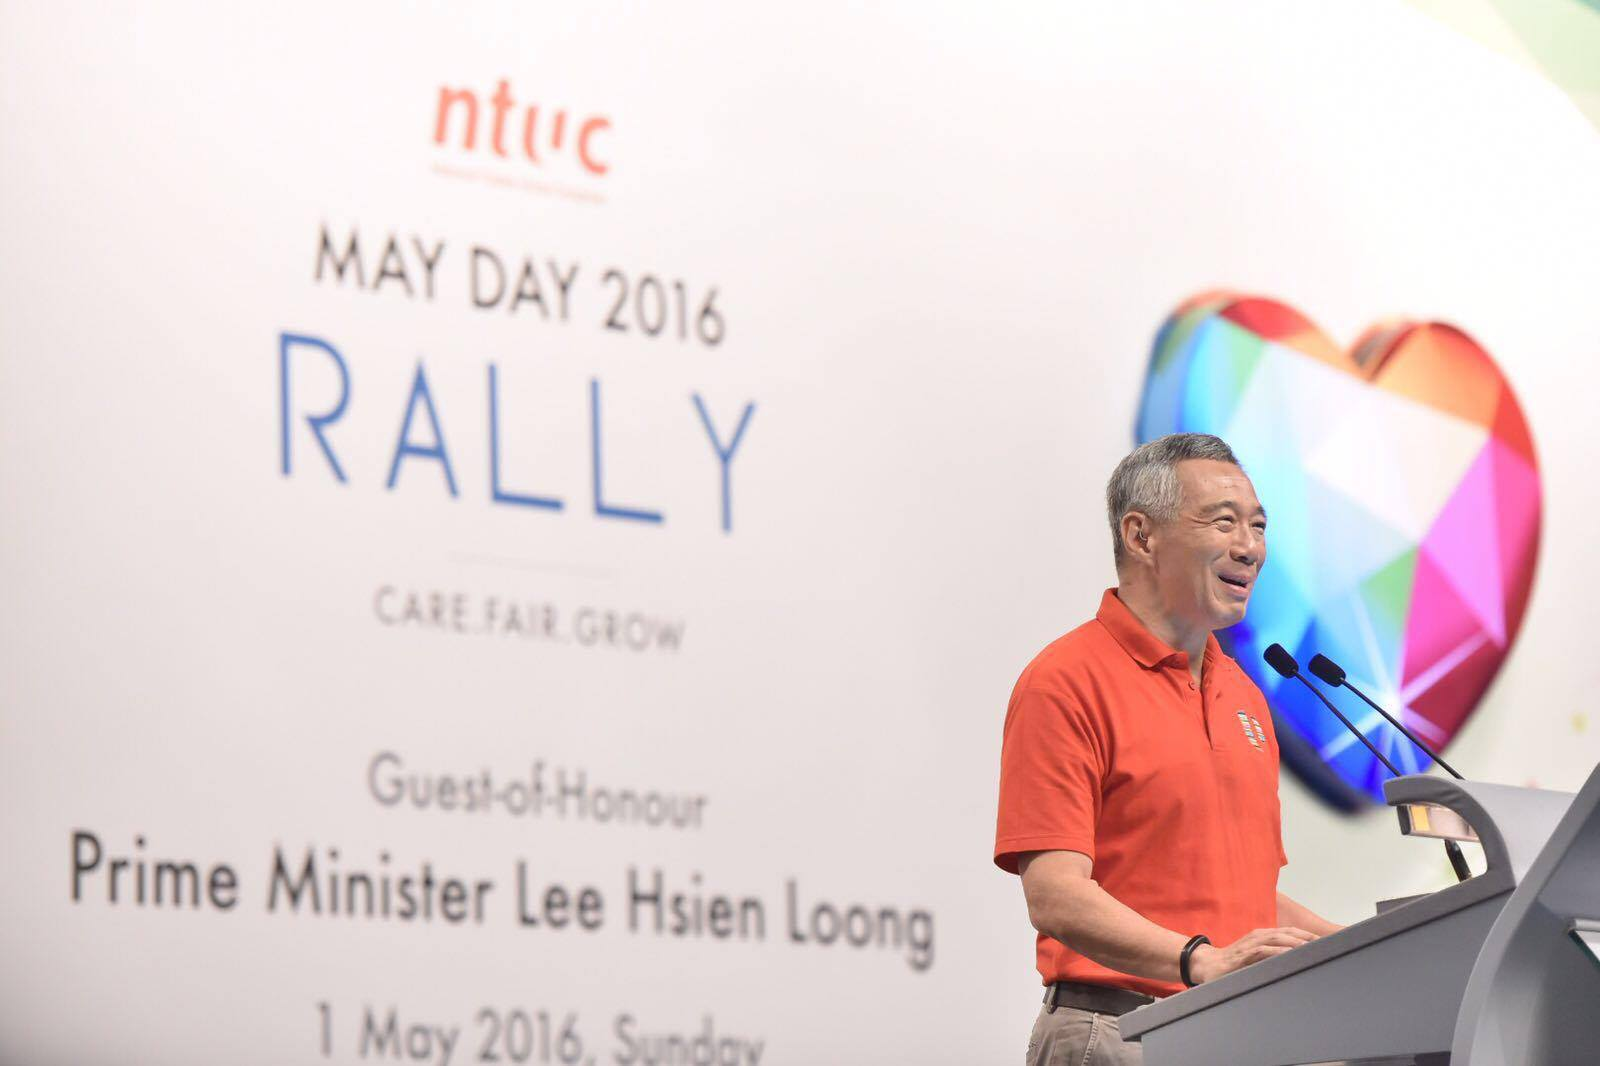 PM Lee_May_Day_Rally_2016_2